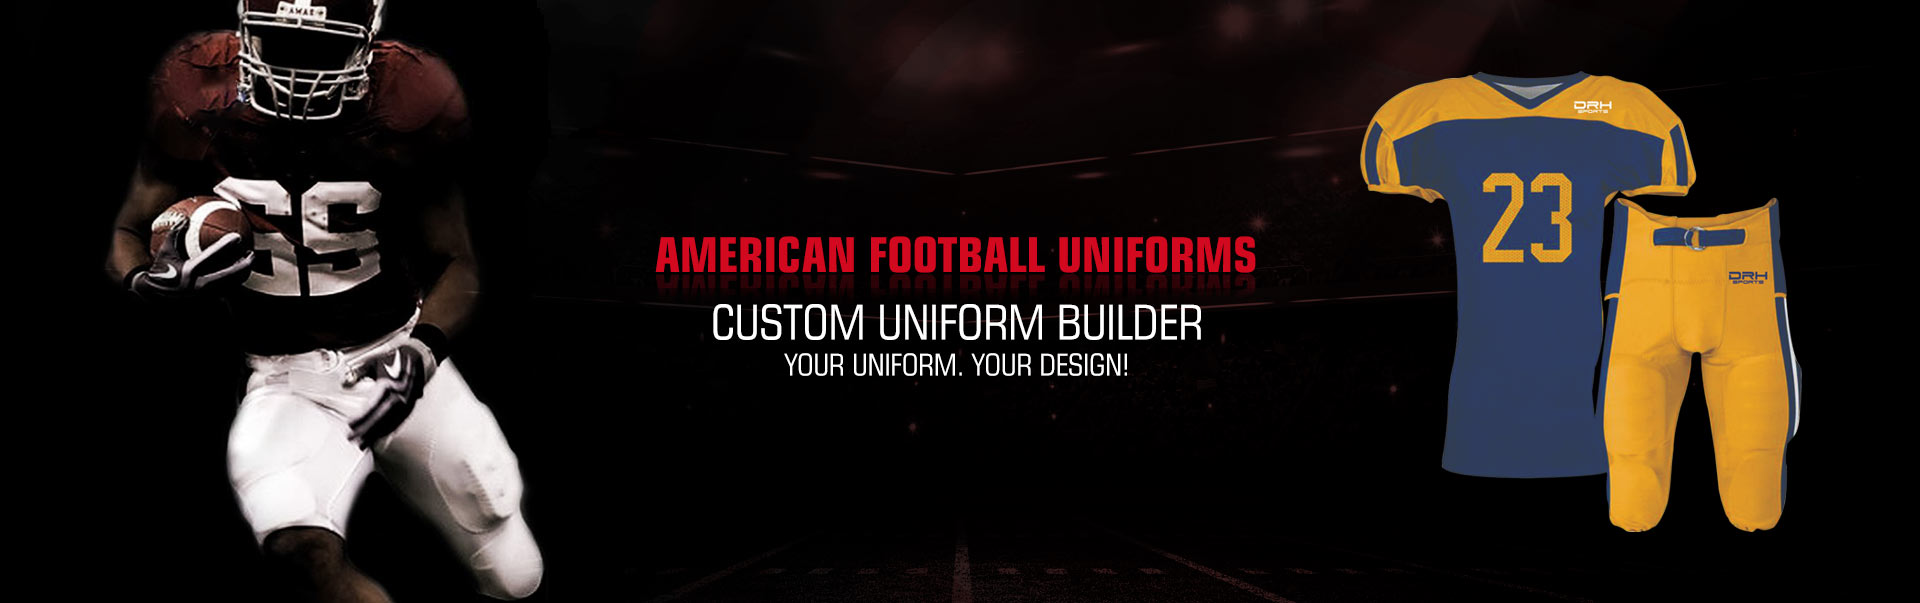 American Football Uniform Wholesaler, Suppliers in Switzerland